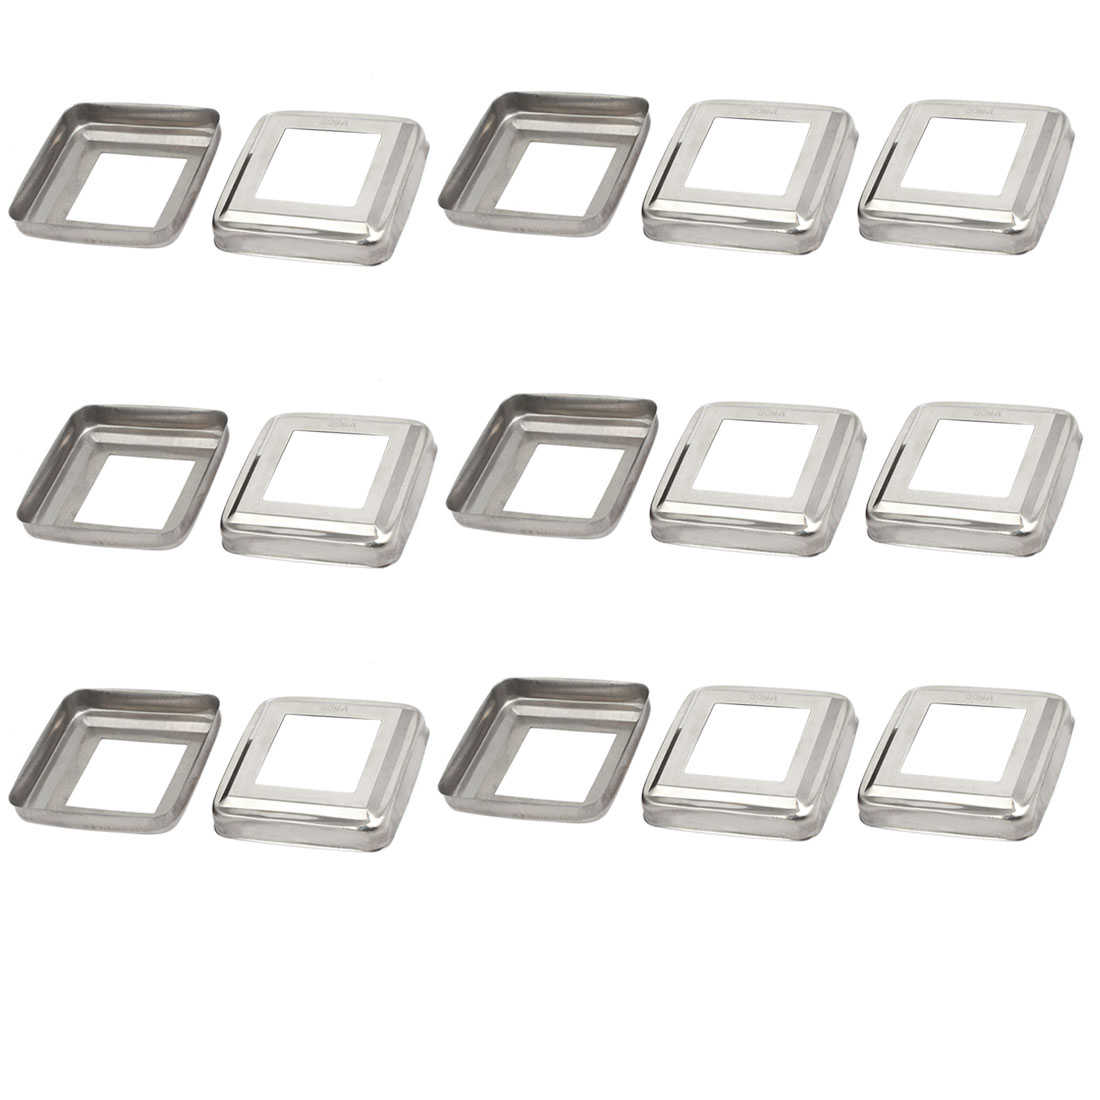 15pcs Ladder Handrail Hand Rail 38mm x 38mm Post Plate Cover 304 Stainless Steel